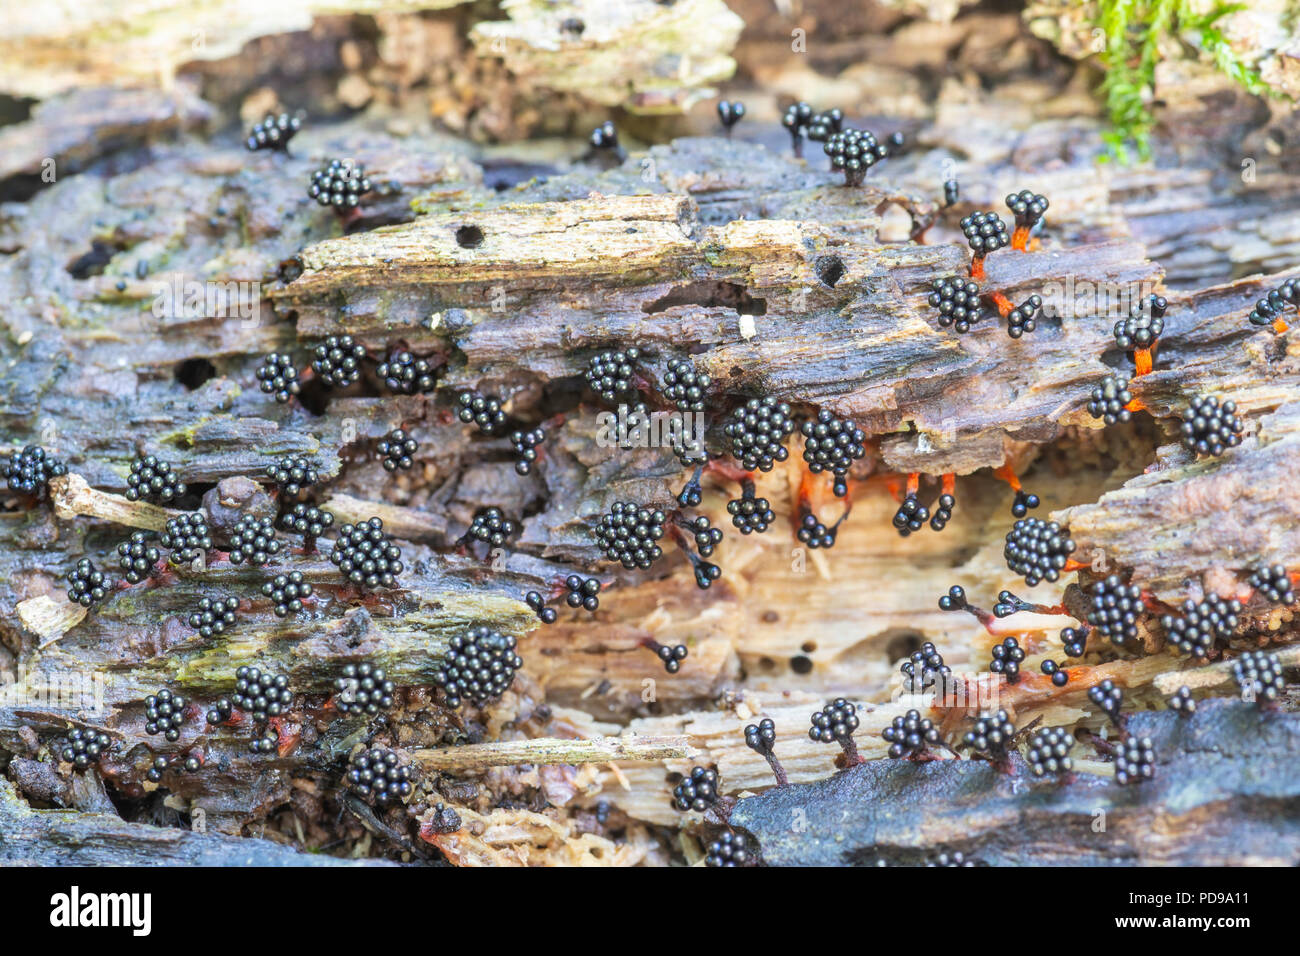 Fruiting bodies of Multigoblet Slime Mold (Metatrichia vesparium) grow on the side of a rotting dead tree. - Stock Image